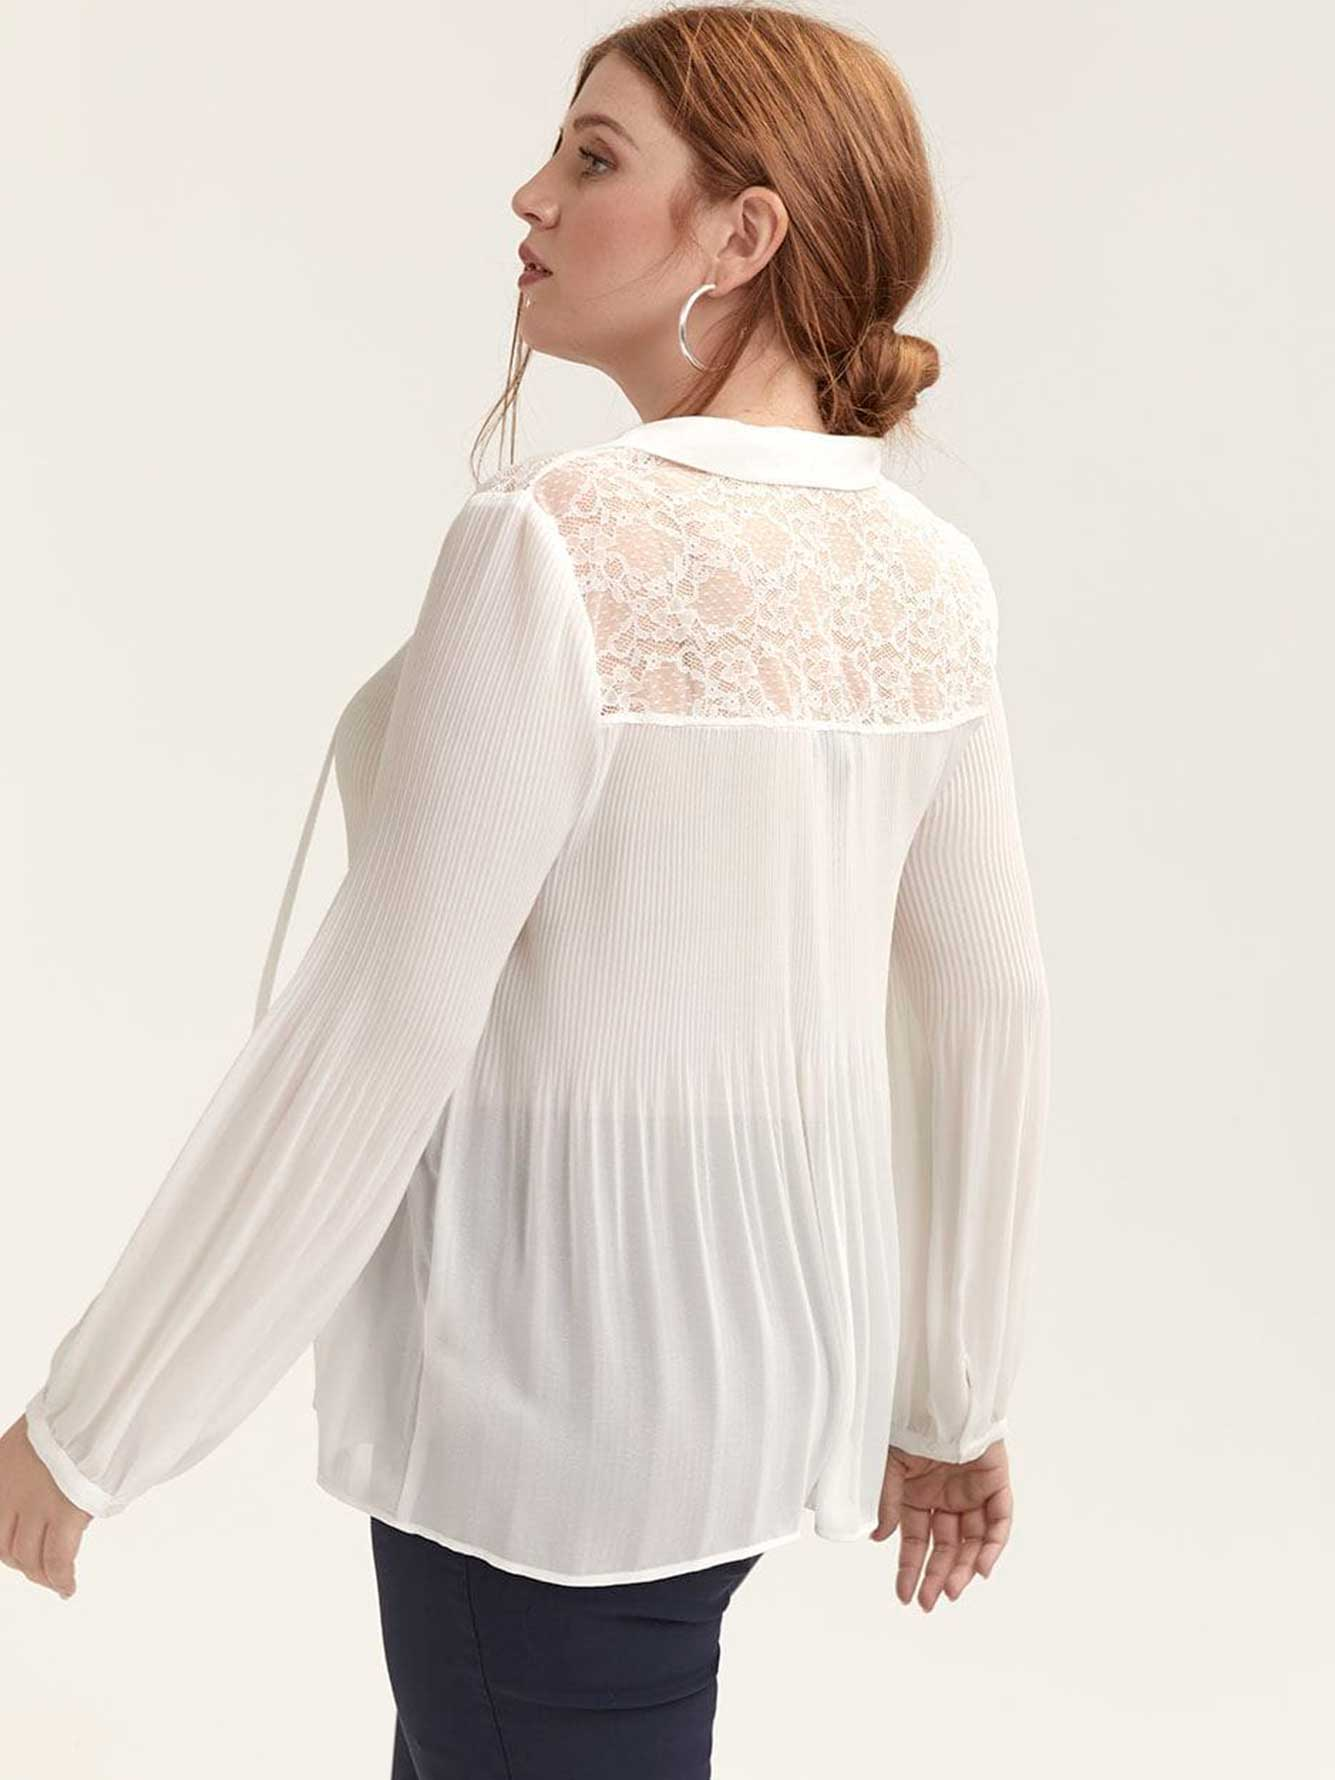 Boho Swing Blouse - L&L